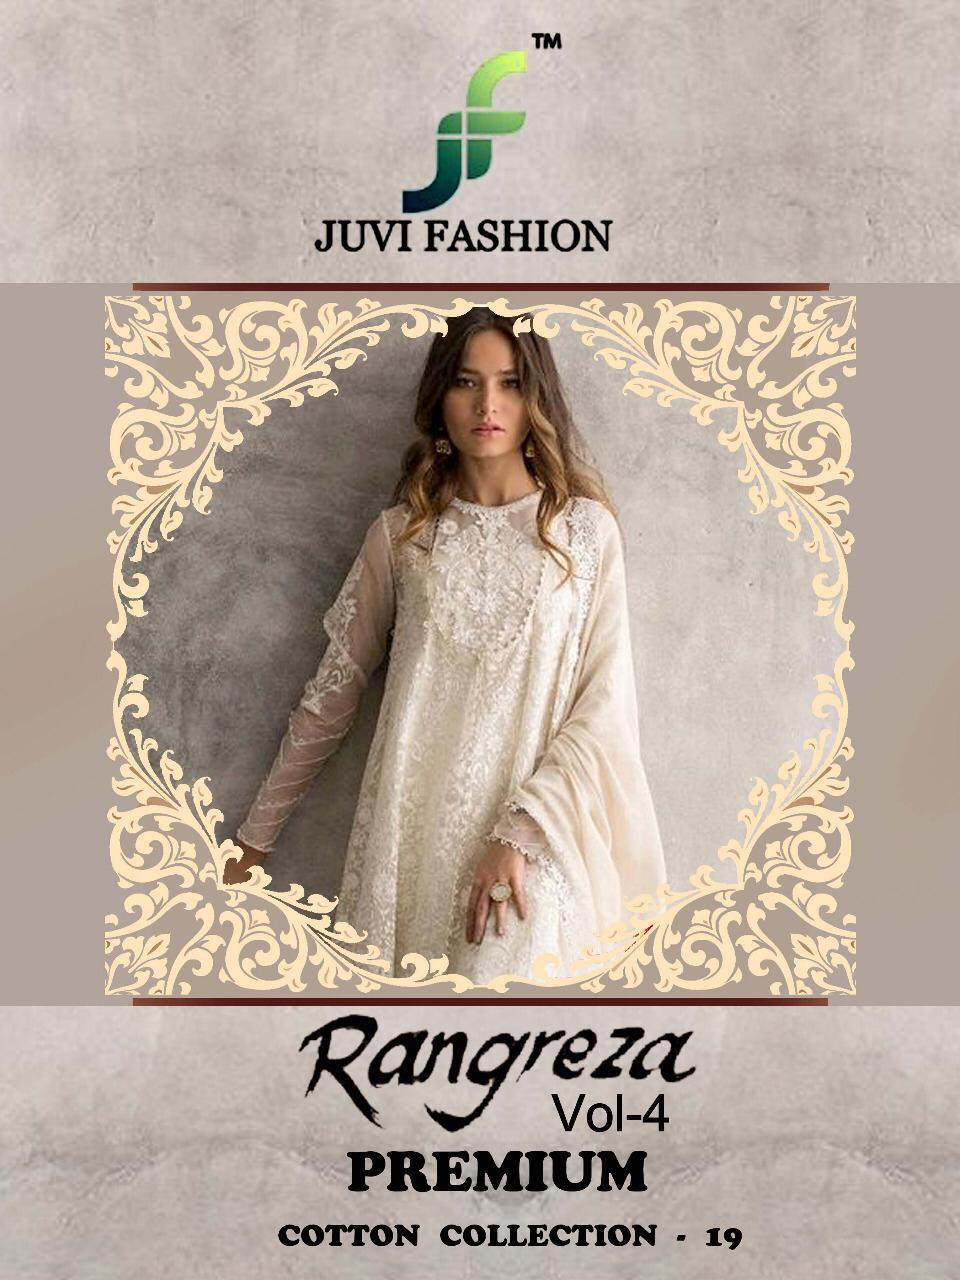 5504ffc0c3 Juvi fashion rangreza vol 4 premium cotton collection 19 Cambric cotton  Pakistani salwar kameez Collection